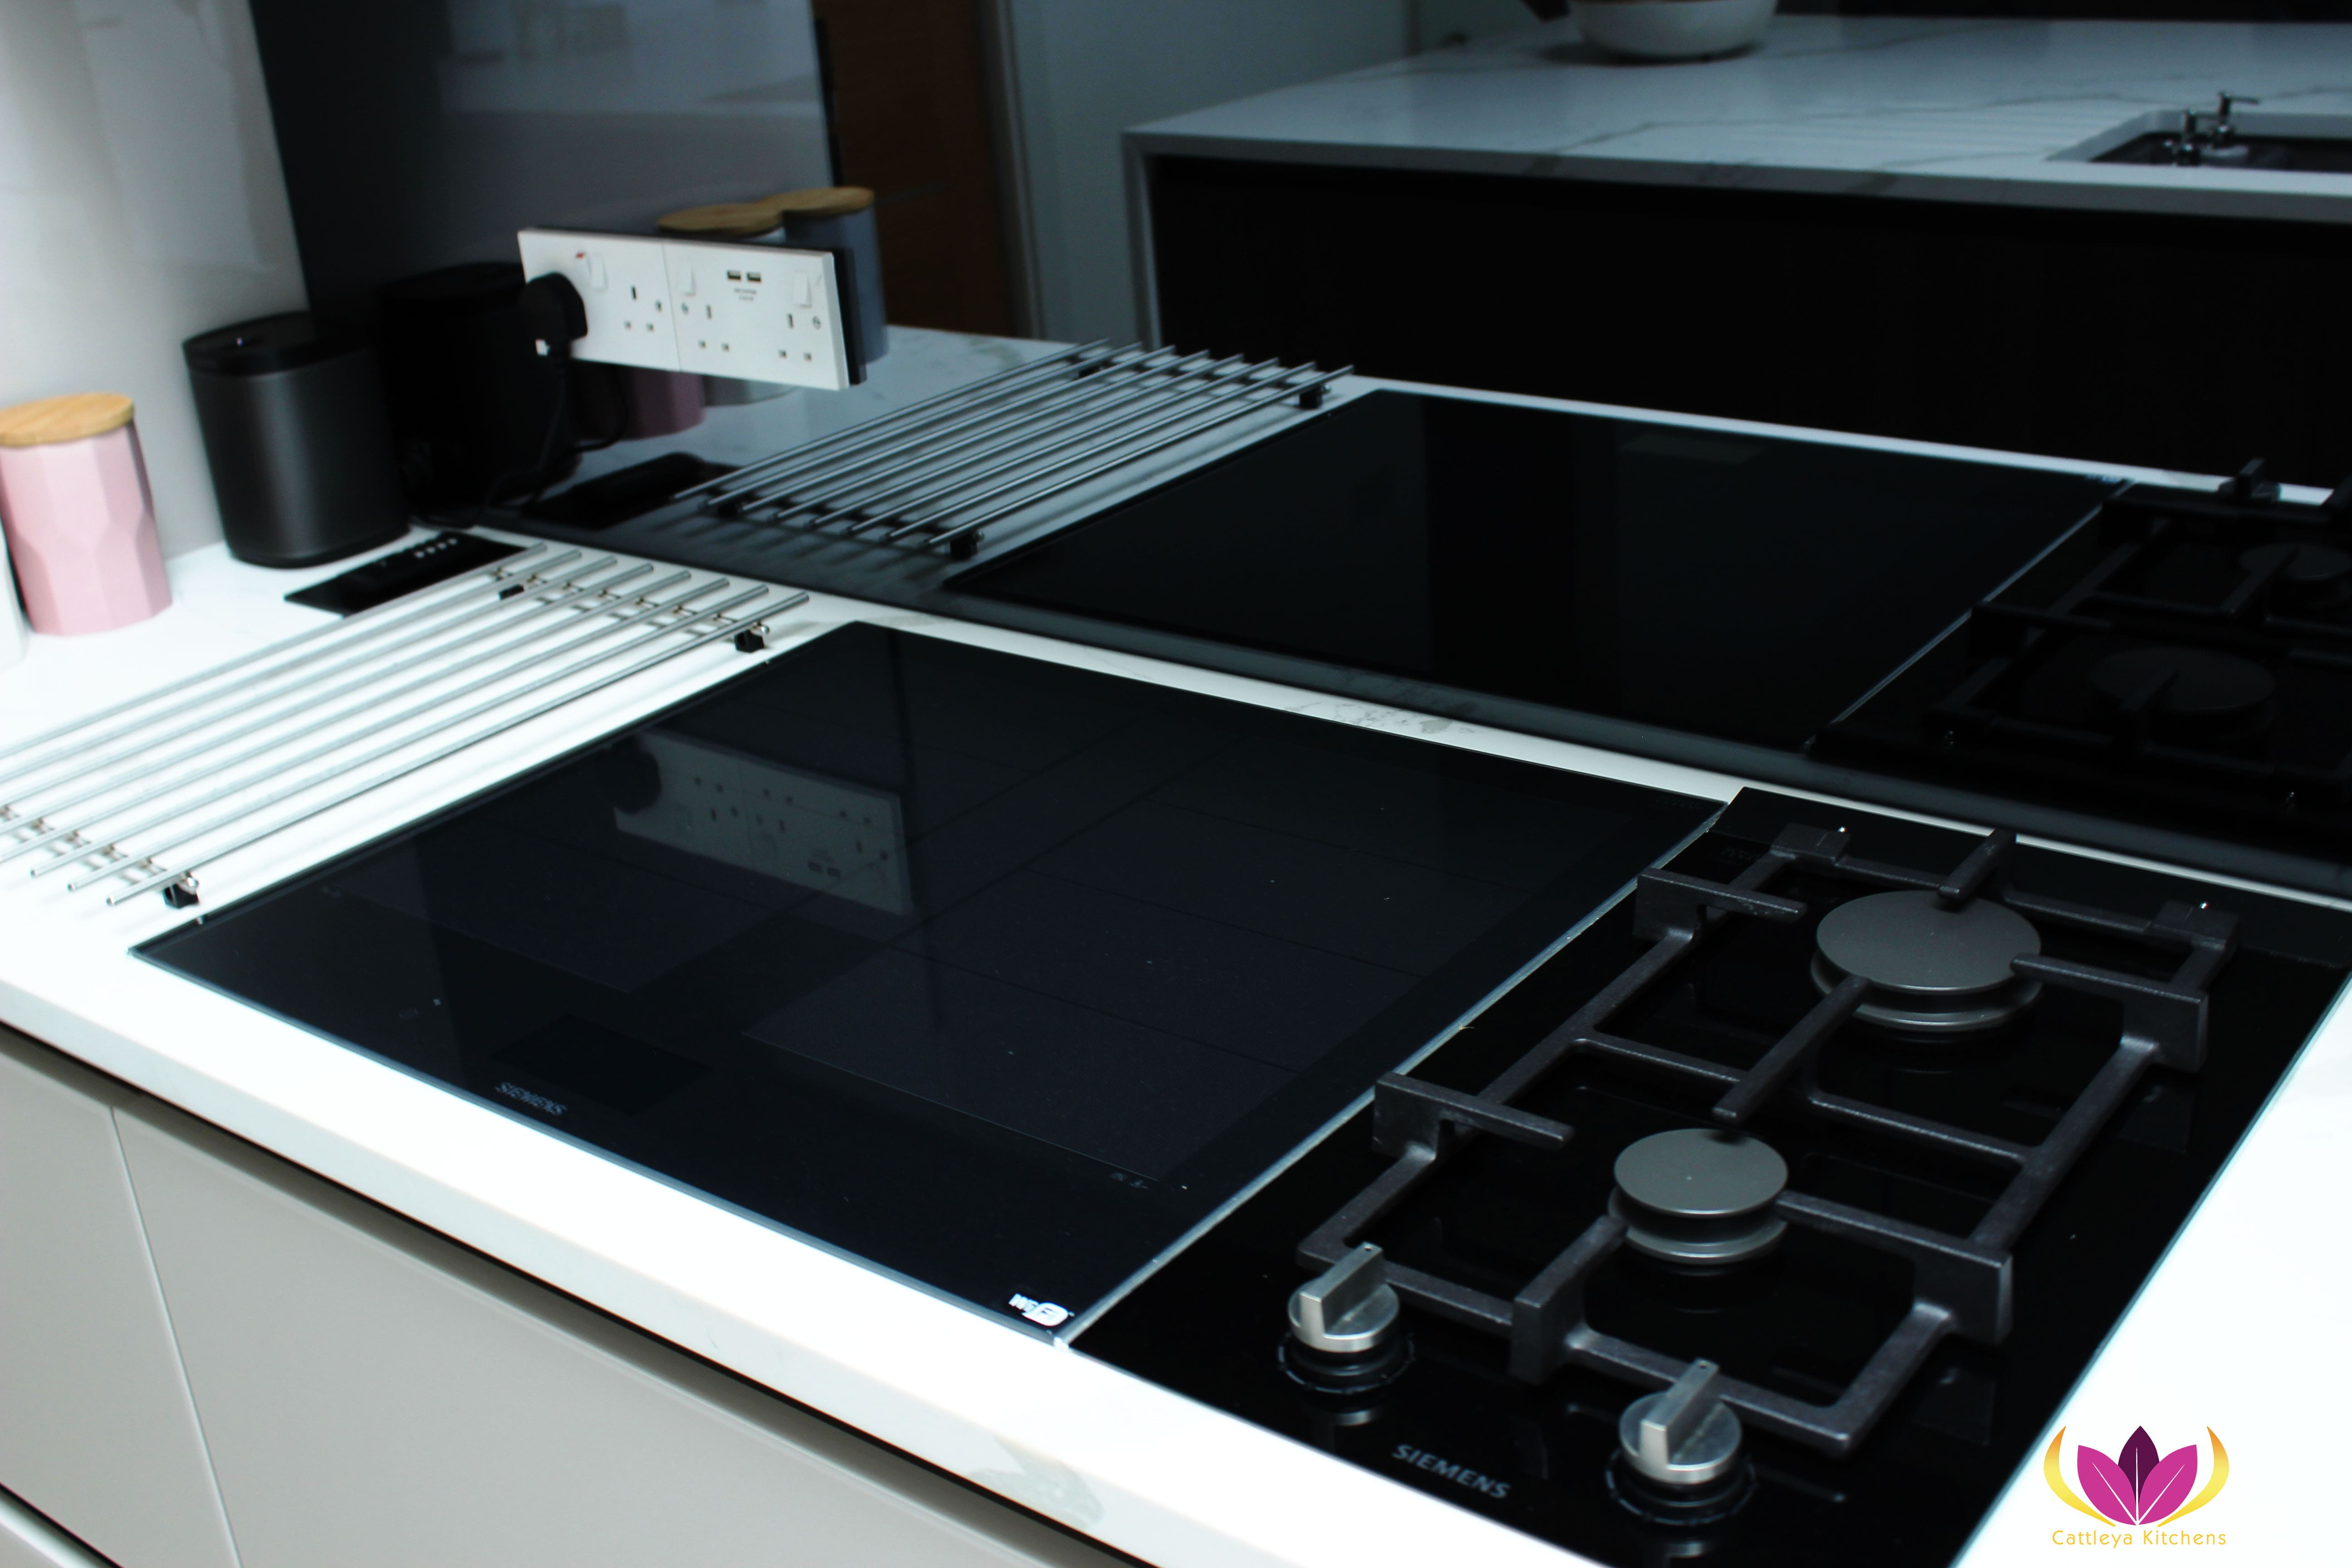 Siemens induction cooker & gas hob - Greenford Finished Kitchen Project